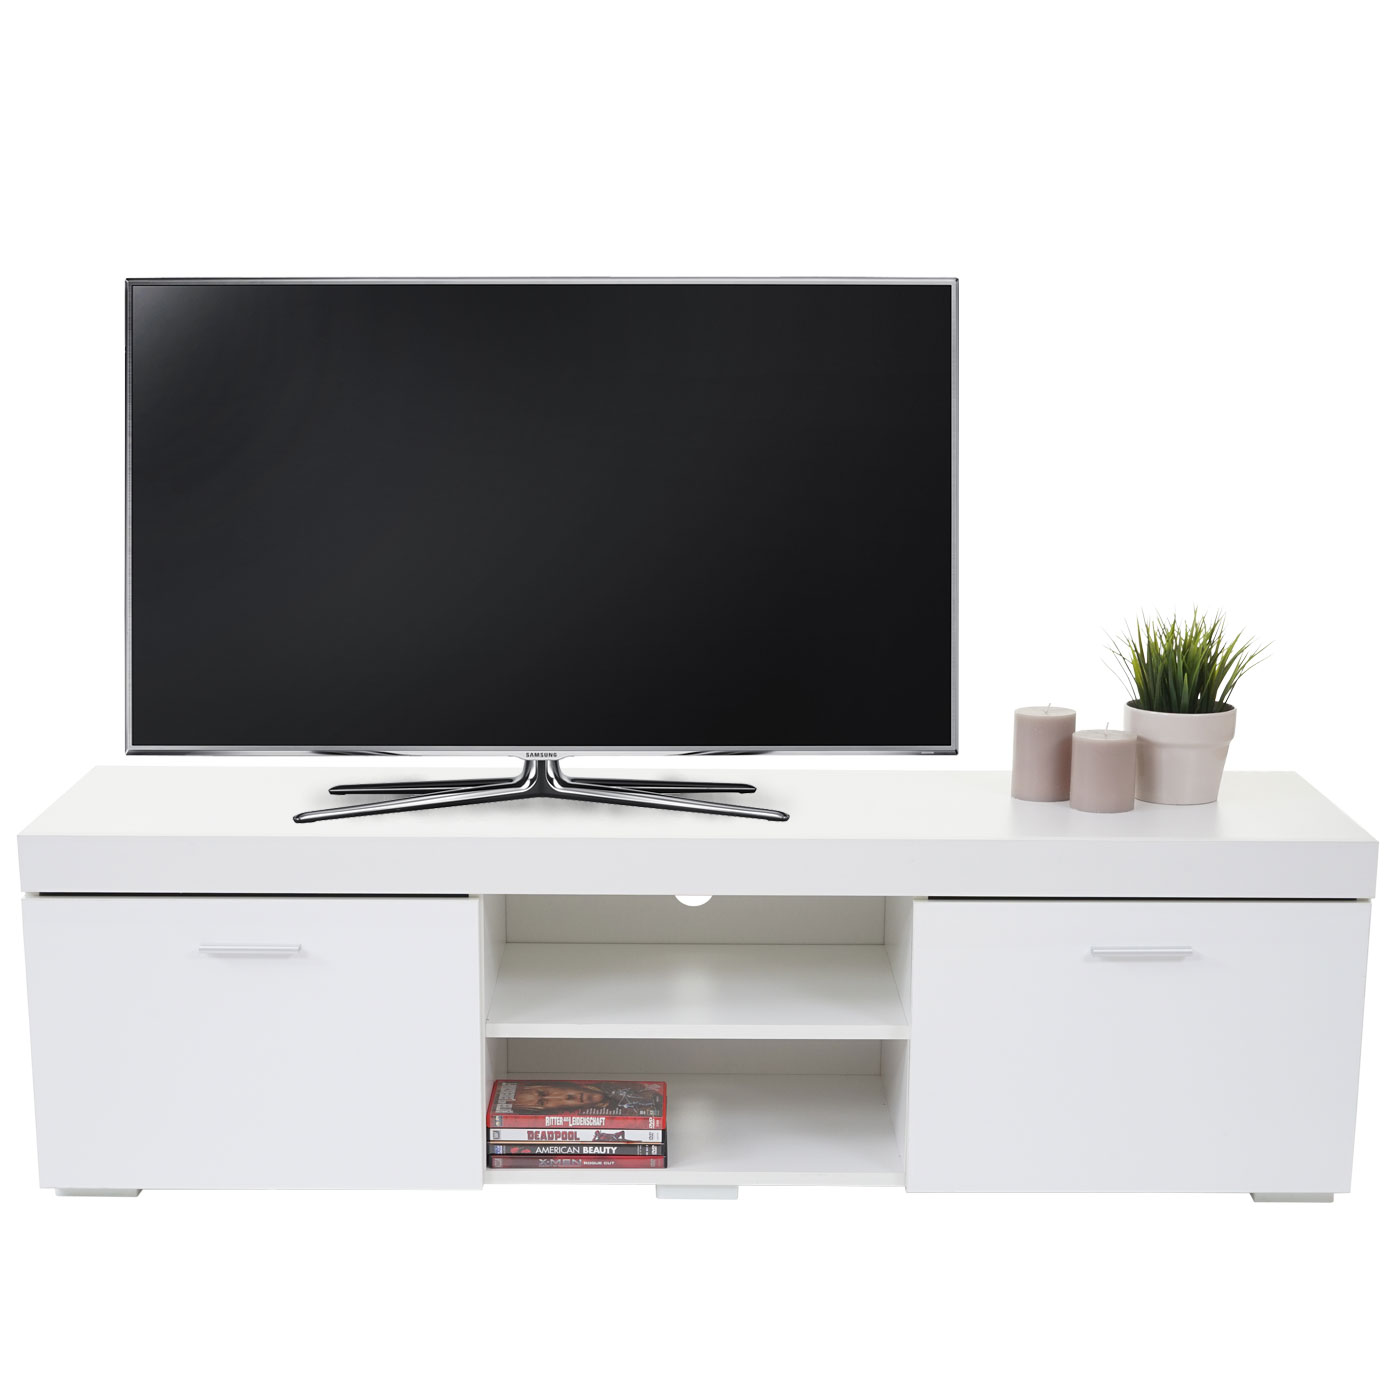 tv rack portland fernsehtisch lowboard hochglanz 140x40x40cm ebay. Black Bedroom Furniture Sets. Home Design Ideas